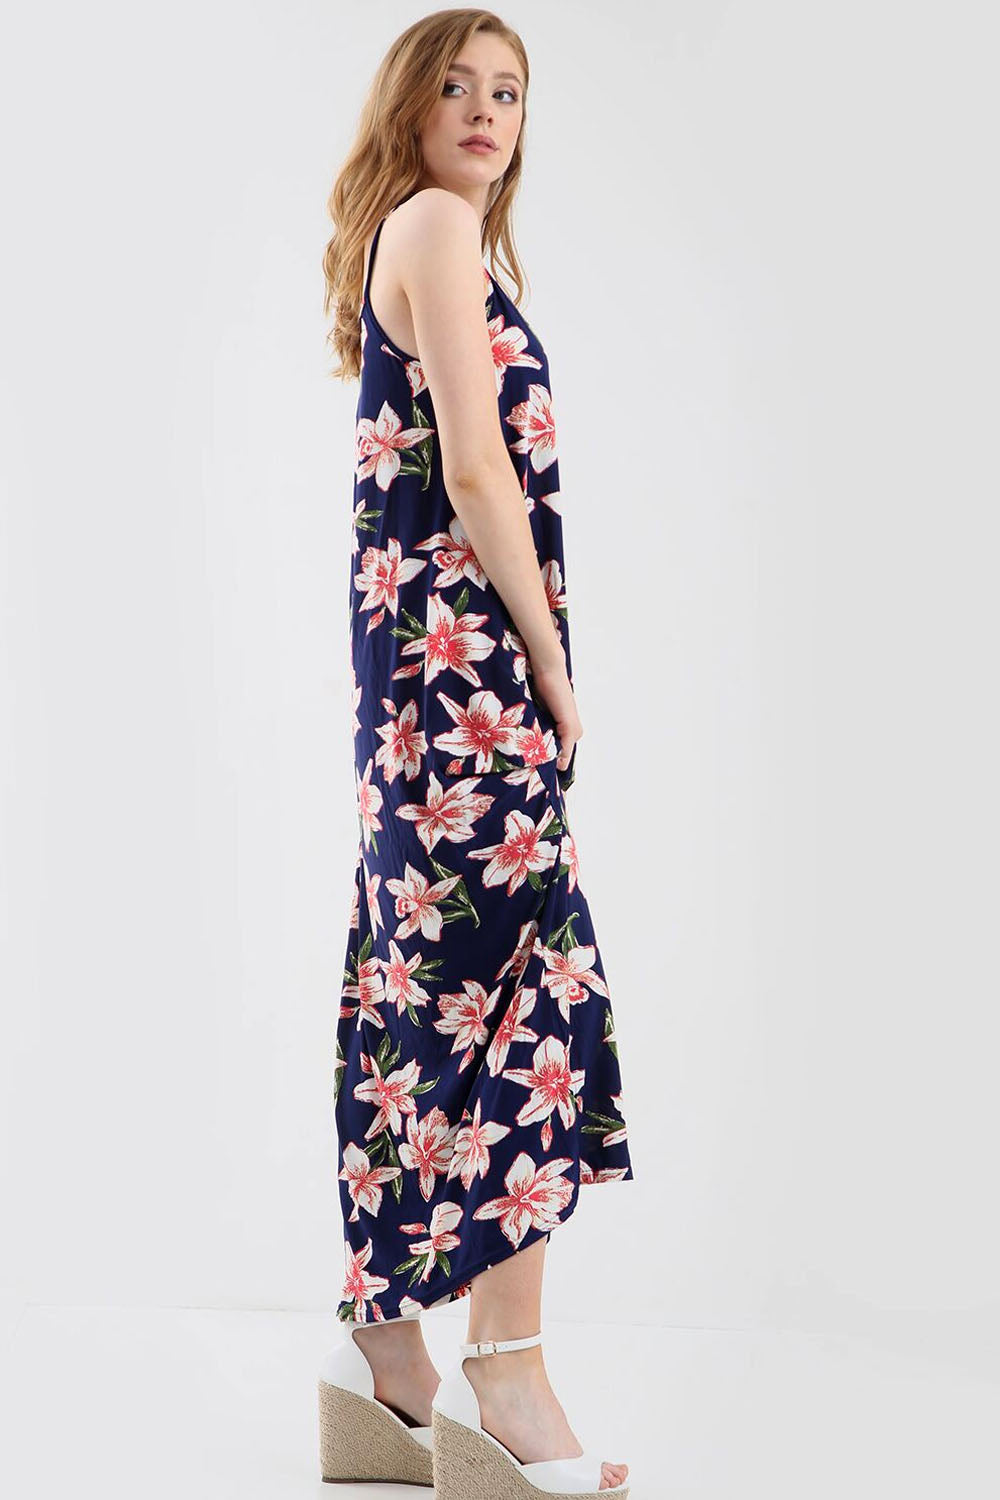 Cami Floral Print Floaty Strappy Maxi Dress - bejealous-com